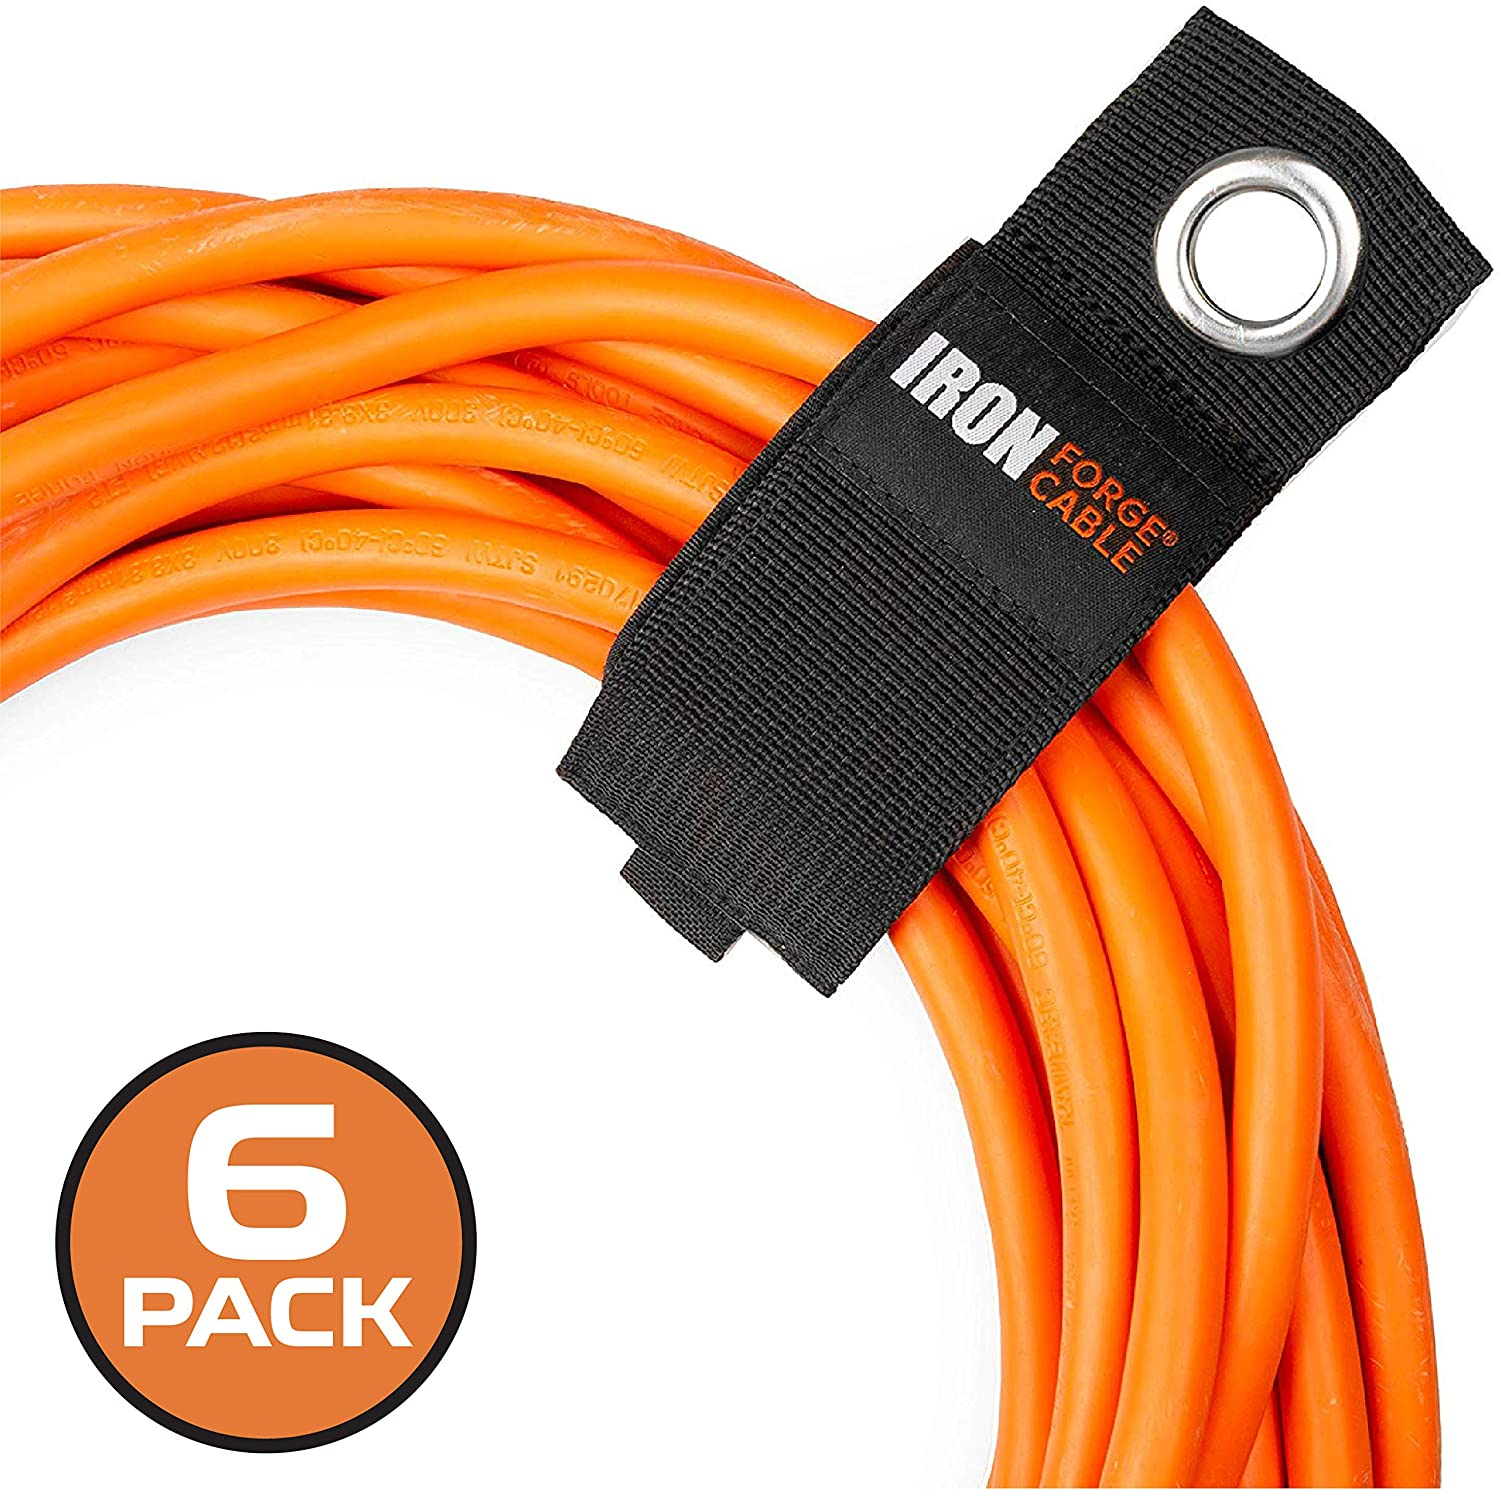 Extension Cord Wrap Organizer, 6 Pack of Storage Straps - Large 13.25 Inch Hook and Loop Hanger Wraps for Power Cables, Hoses, Ropes, and More